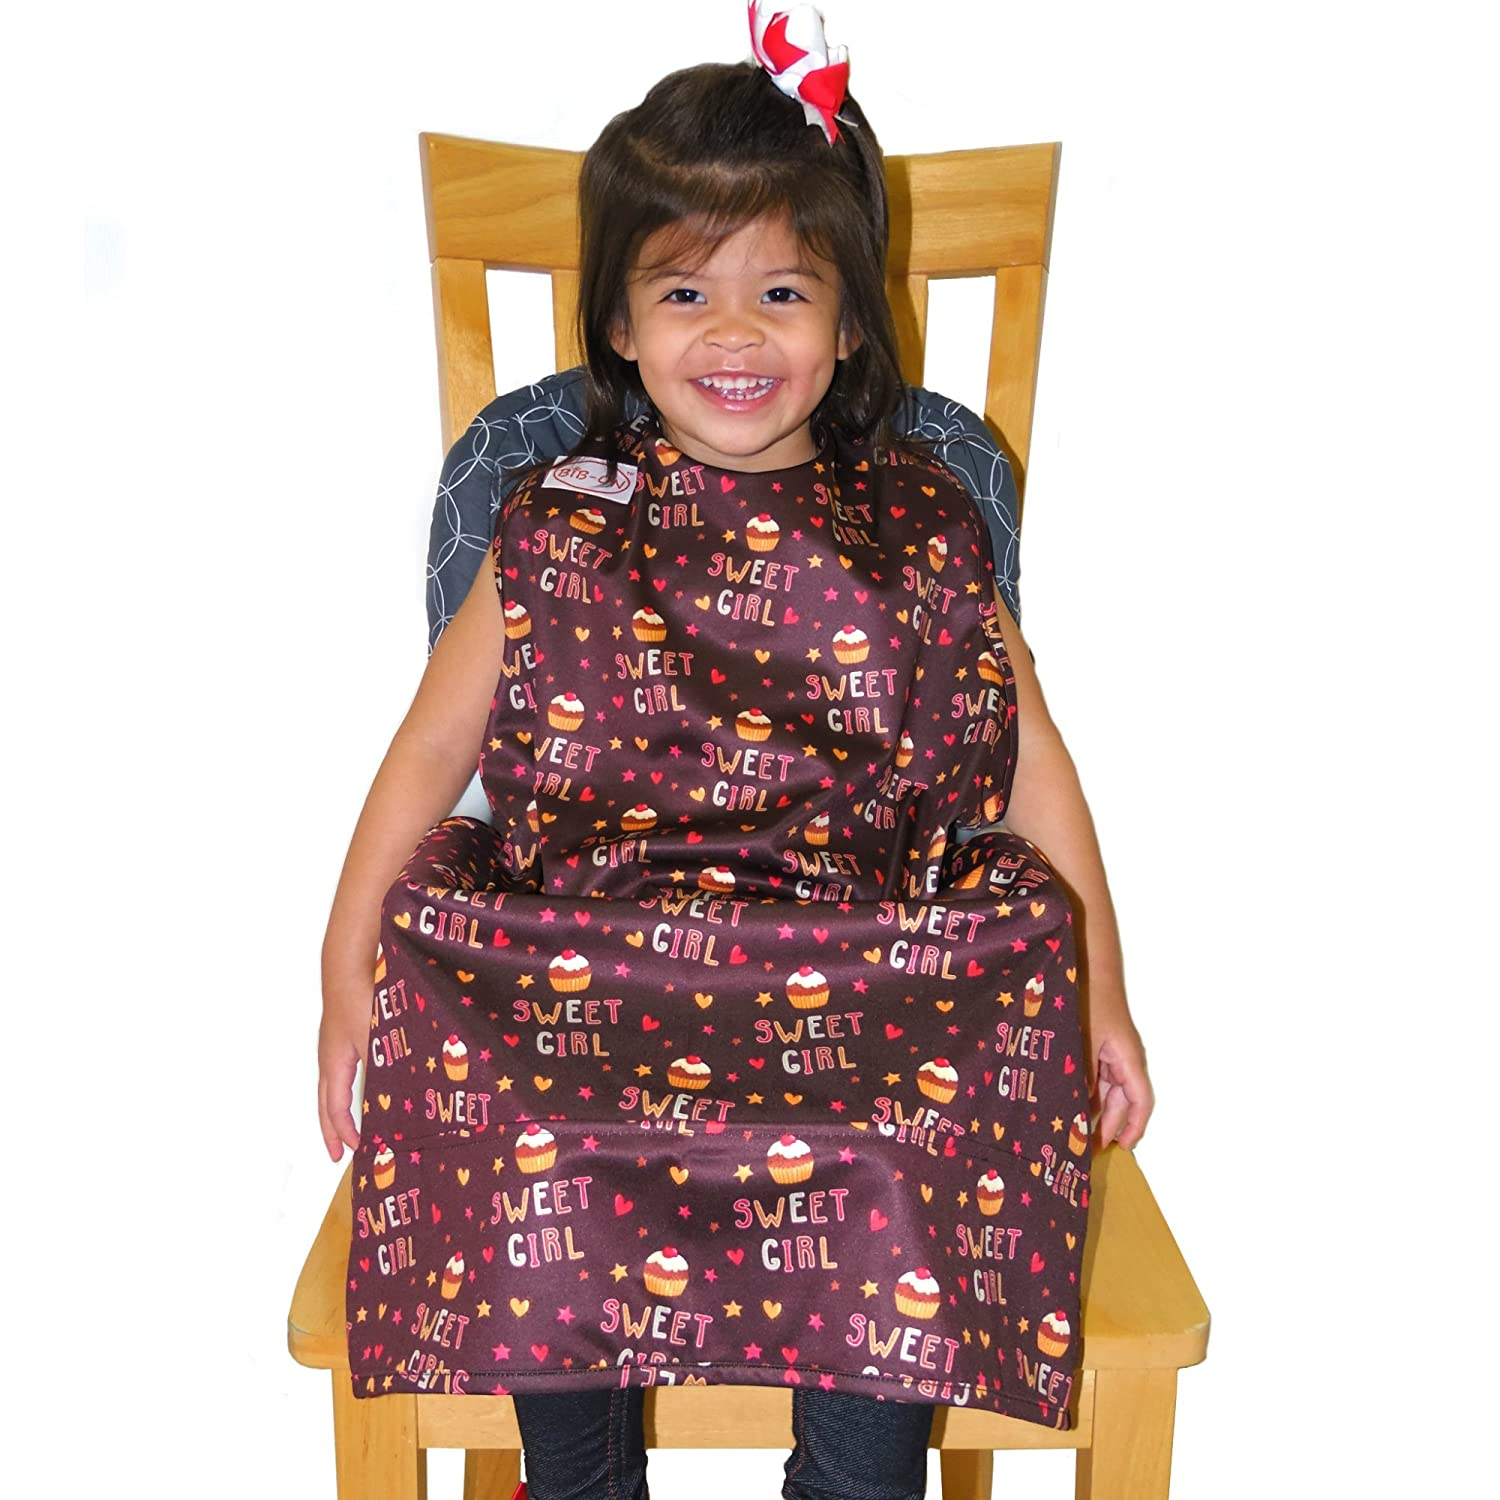 BIB-ON XL, A New, Full-Coverage Bib and Apron Combination for Ages 3 and Up. (Sweet Girl Cupcakes (BIB-ON XL))…